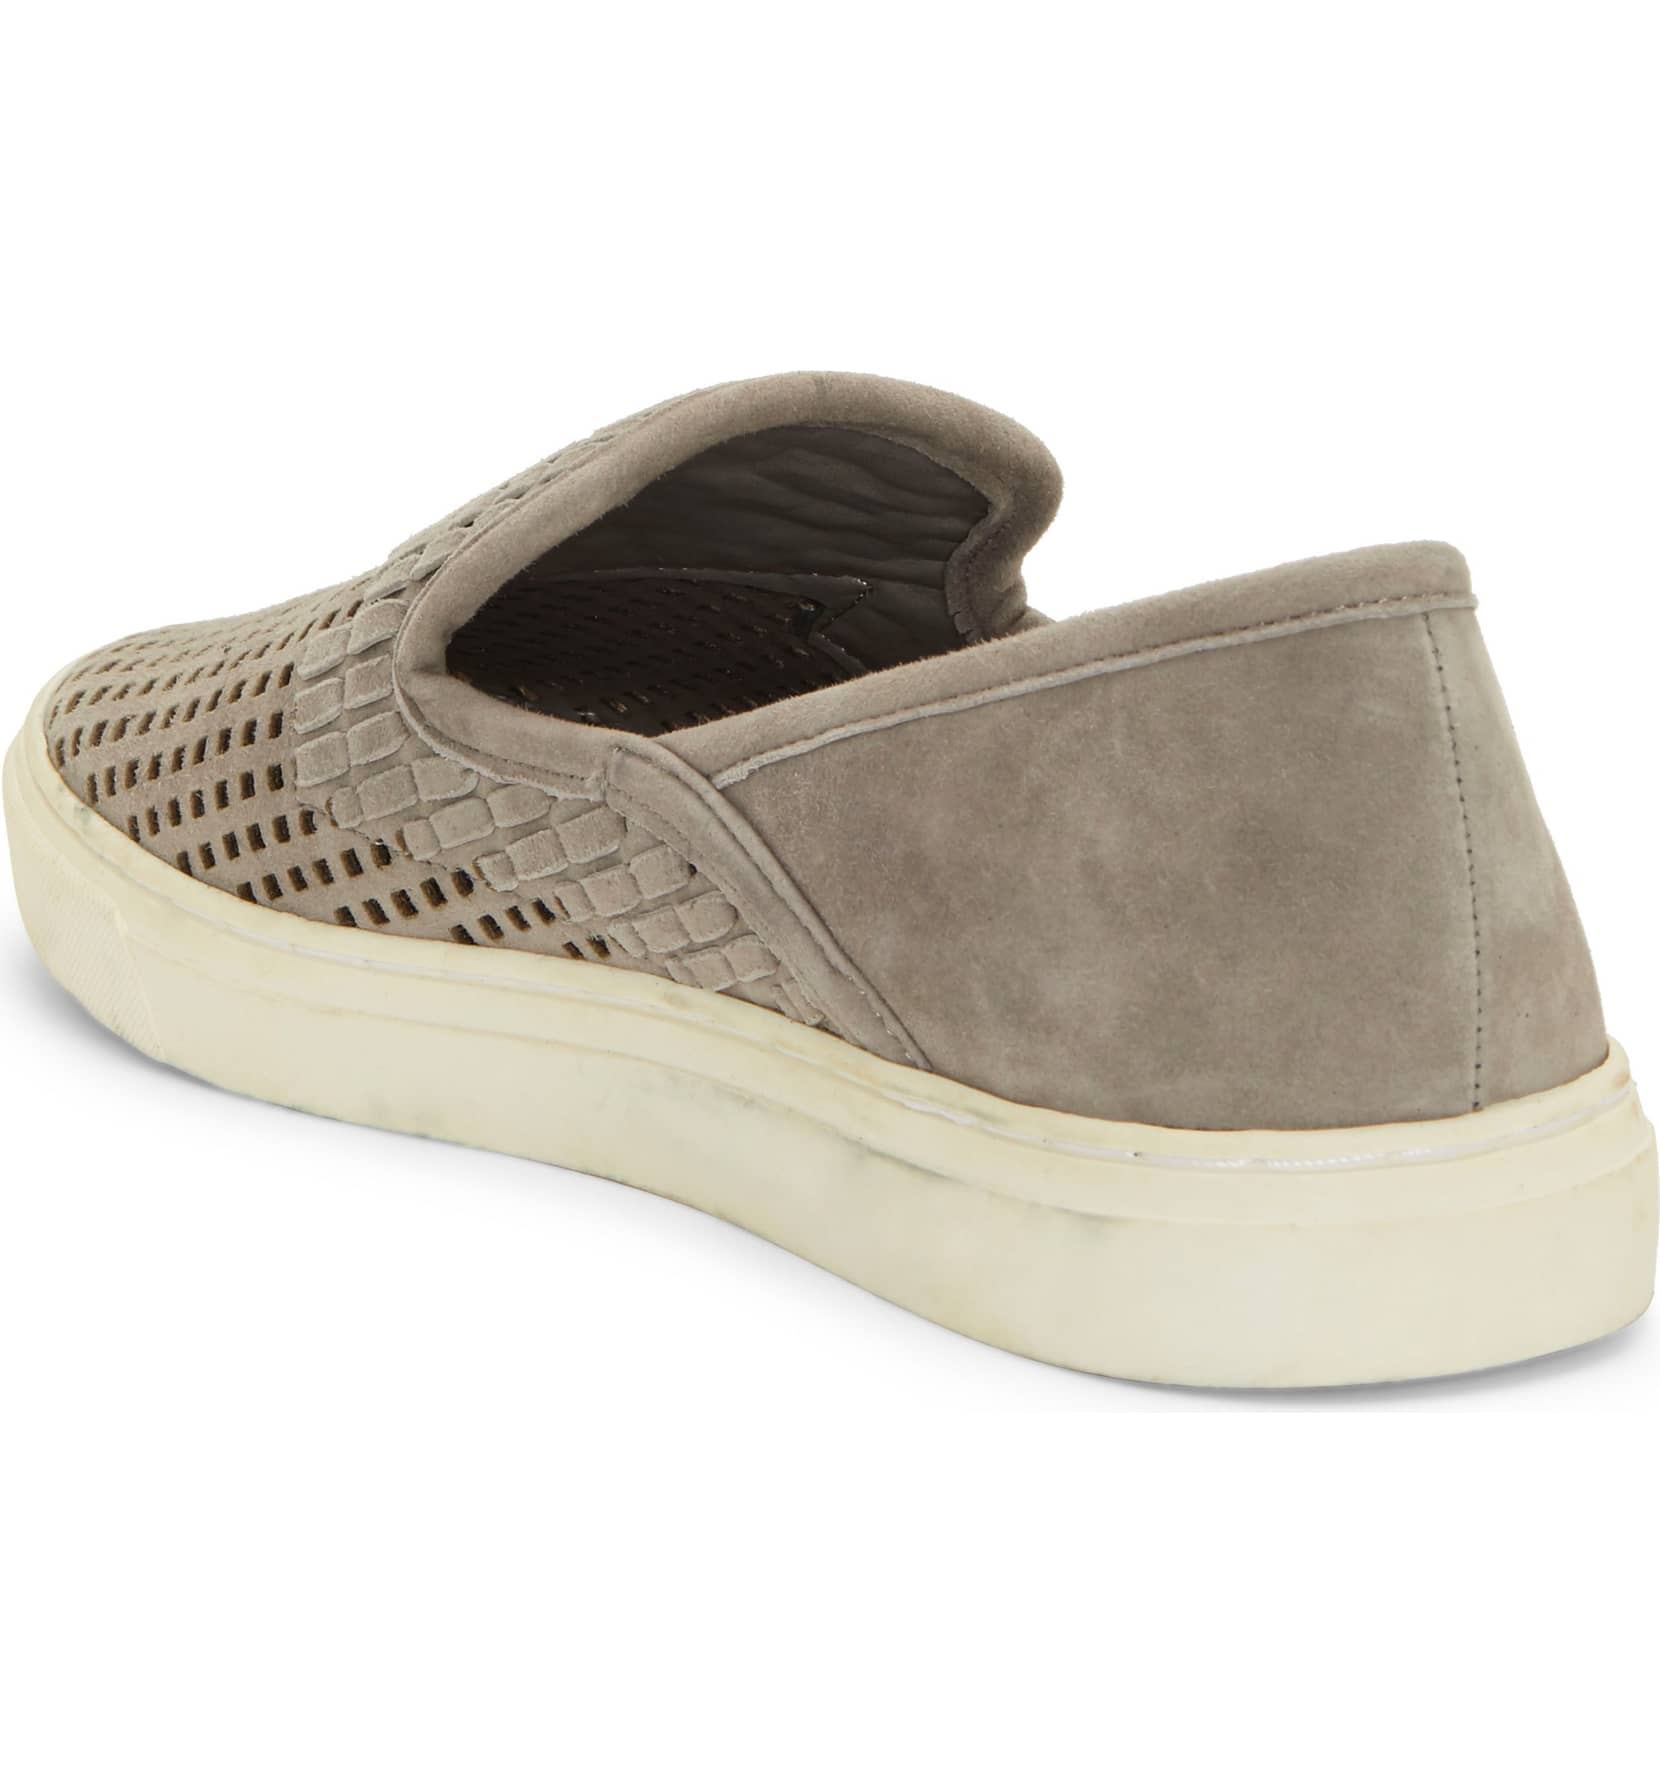 Vince-Camuto-Bristie-Storm-Grey-Leather-Woven-White-Sole-Slip-On-Sneakers thumbnail 43